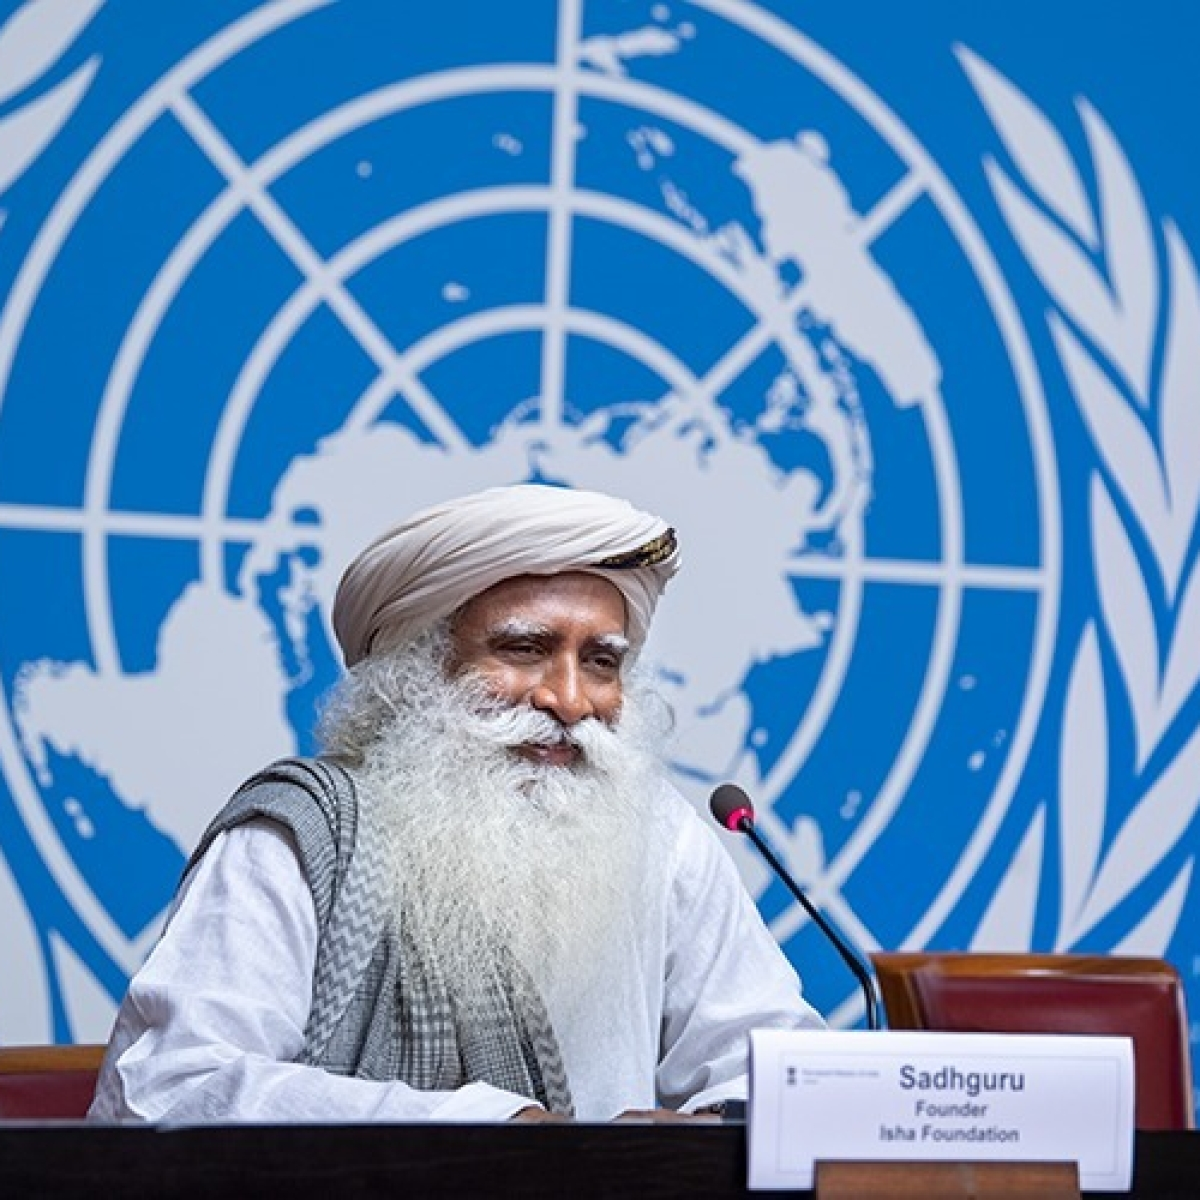 UNEP accredits Isha Foundation to the United Nations Environment Assembly